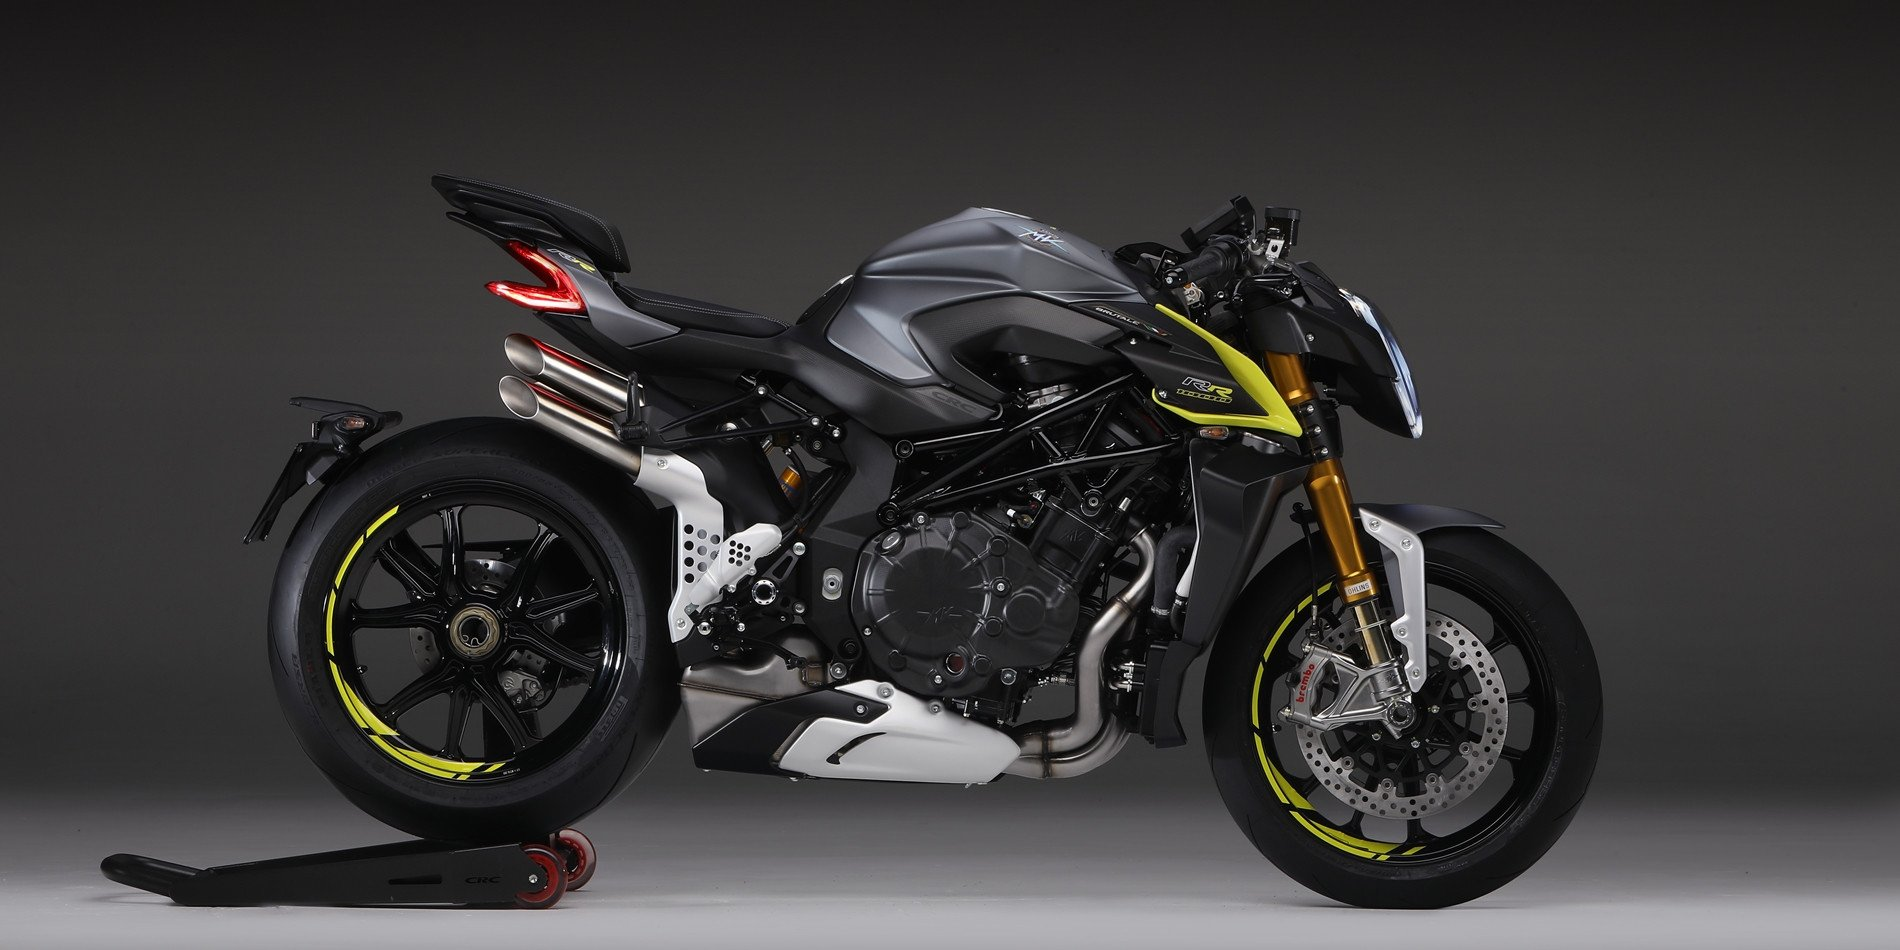 Solid and compact in appearance, the MV Agusta Brutale 1000 RR is packed with high-end components from Brembo, Ohlins and Bosch. Photo courtesy MV Agusta.